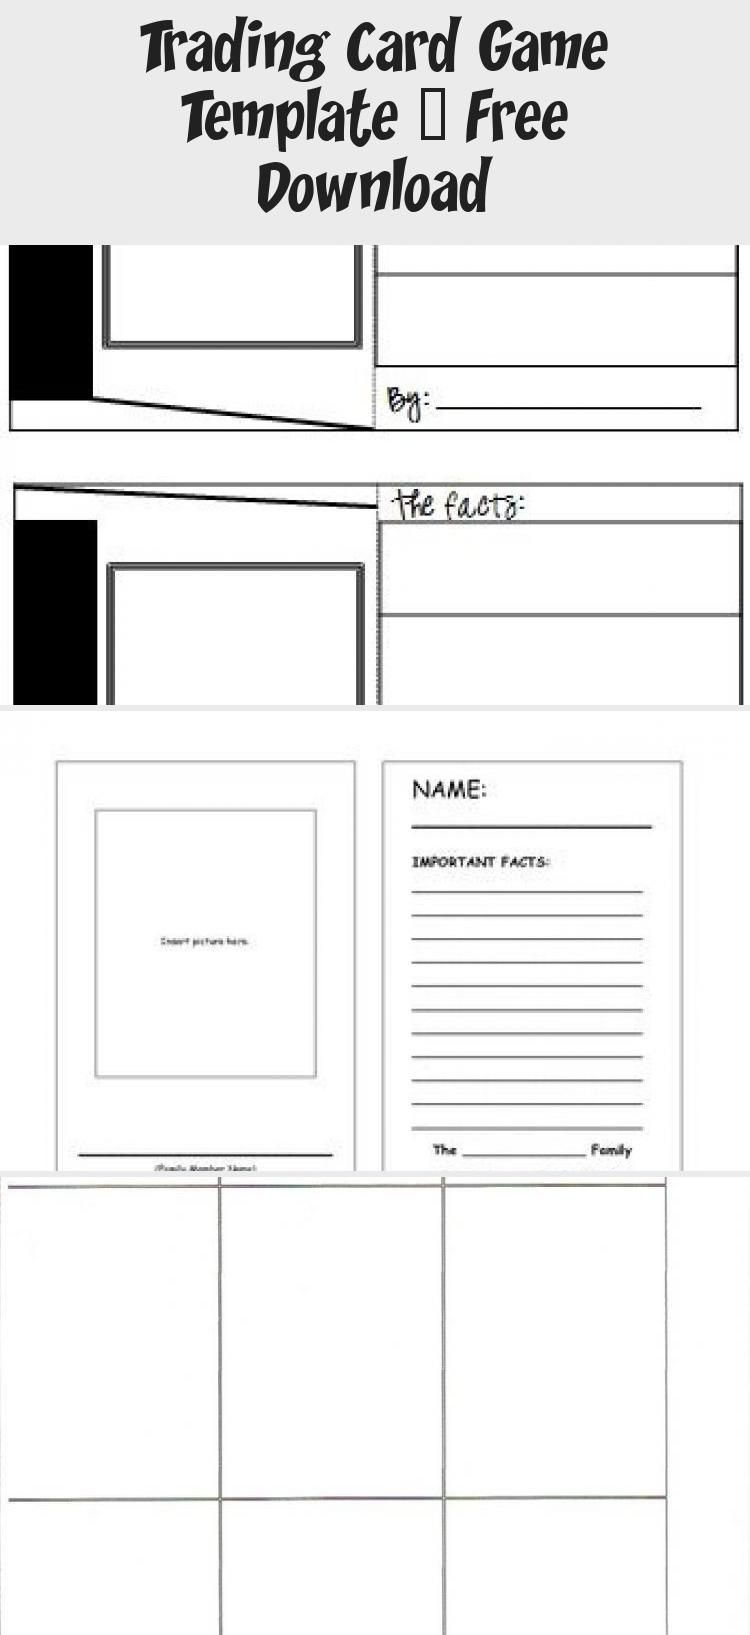 Trading Card Game Template Free Download Trading Cards Game